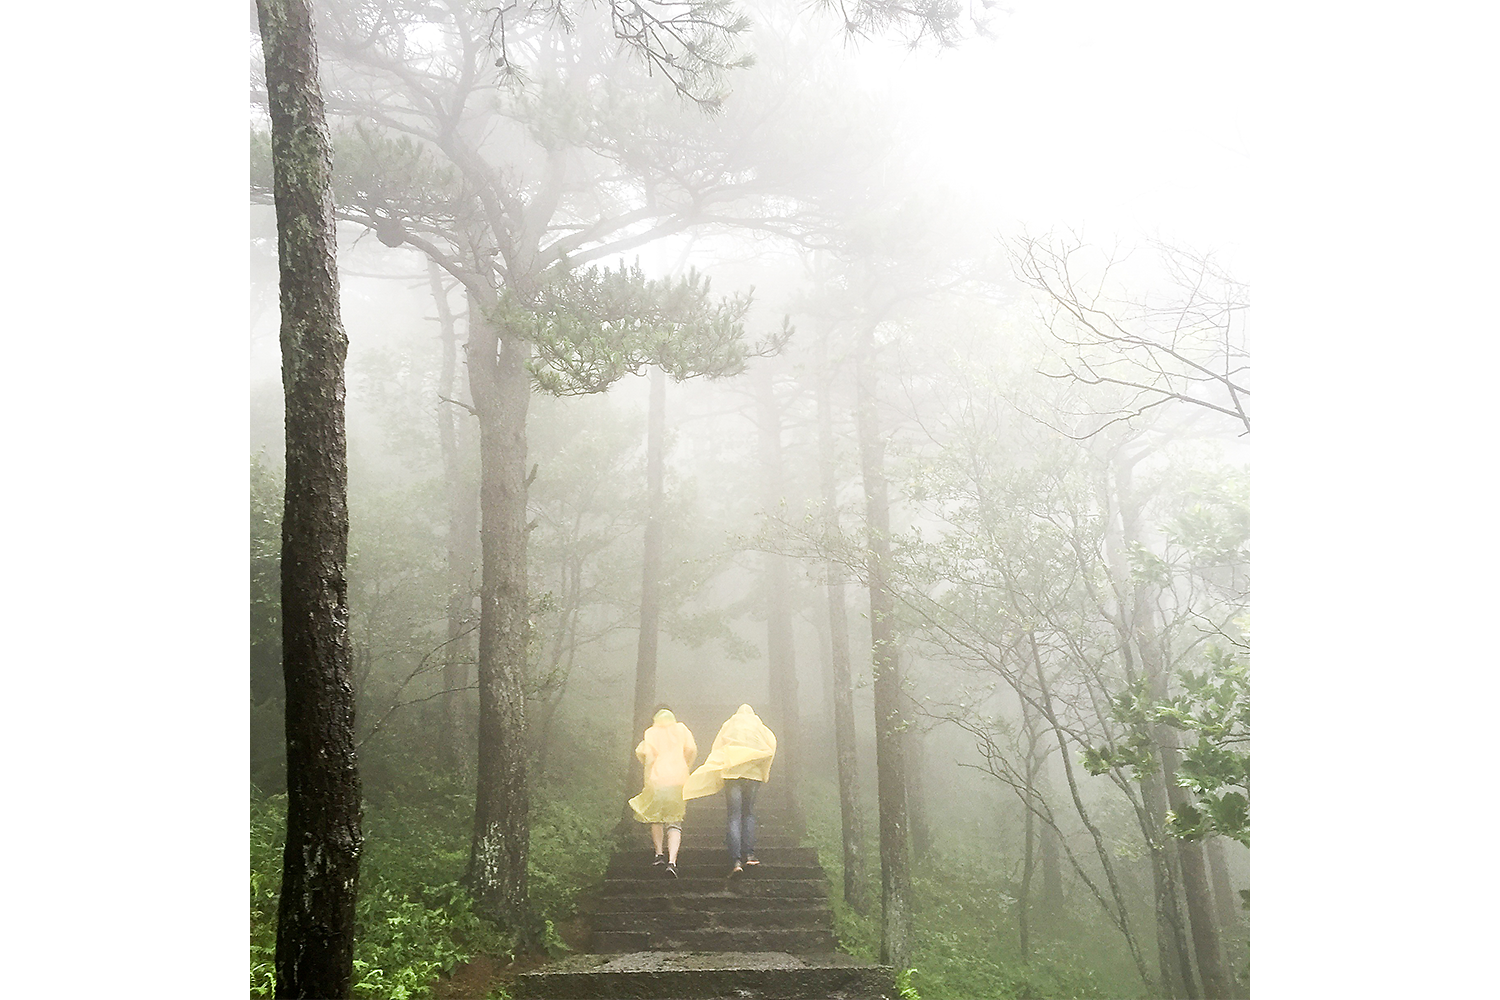 A couple makes its way uphill through wind and fog on Lushan, a mountain in Jiangxi province that has played host to cultural and political figures for centuries. Photo by Sim Chi Yin @chiyin_sim